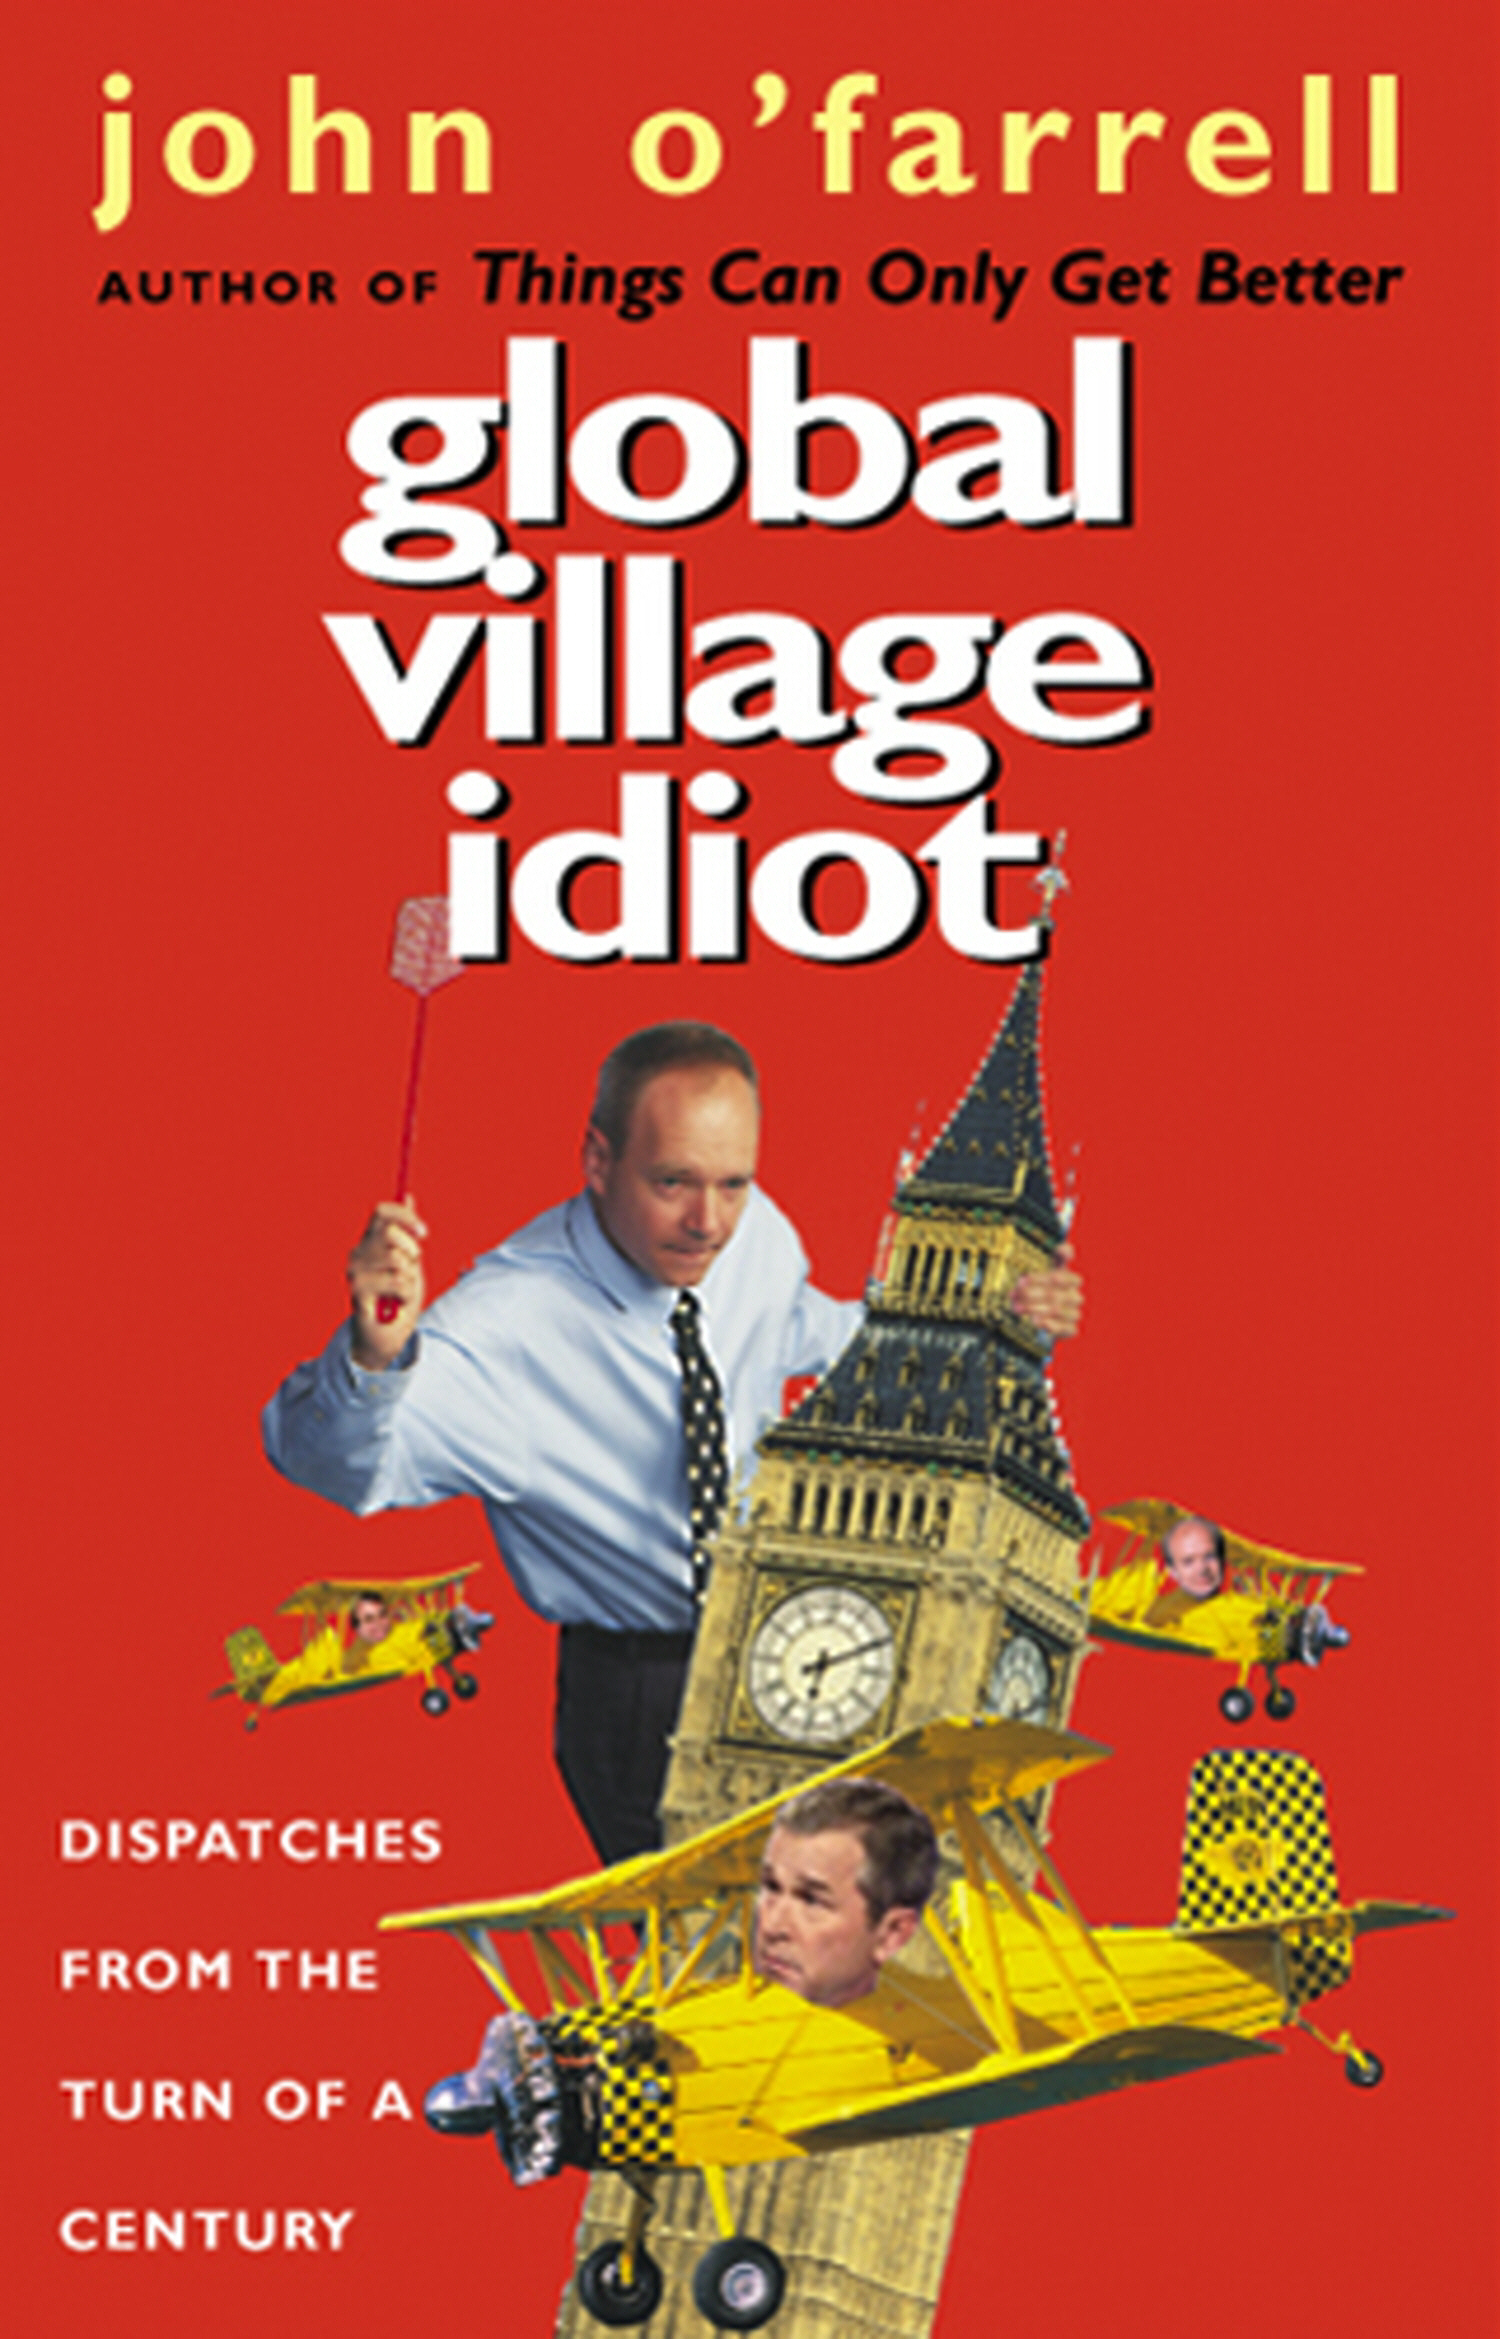 Global Village Idiot